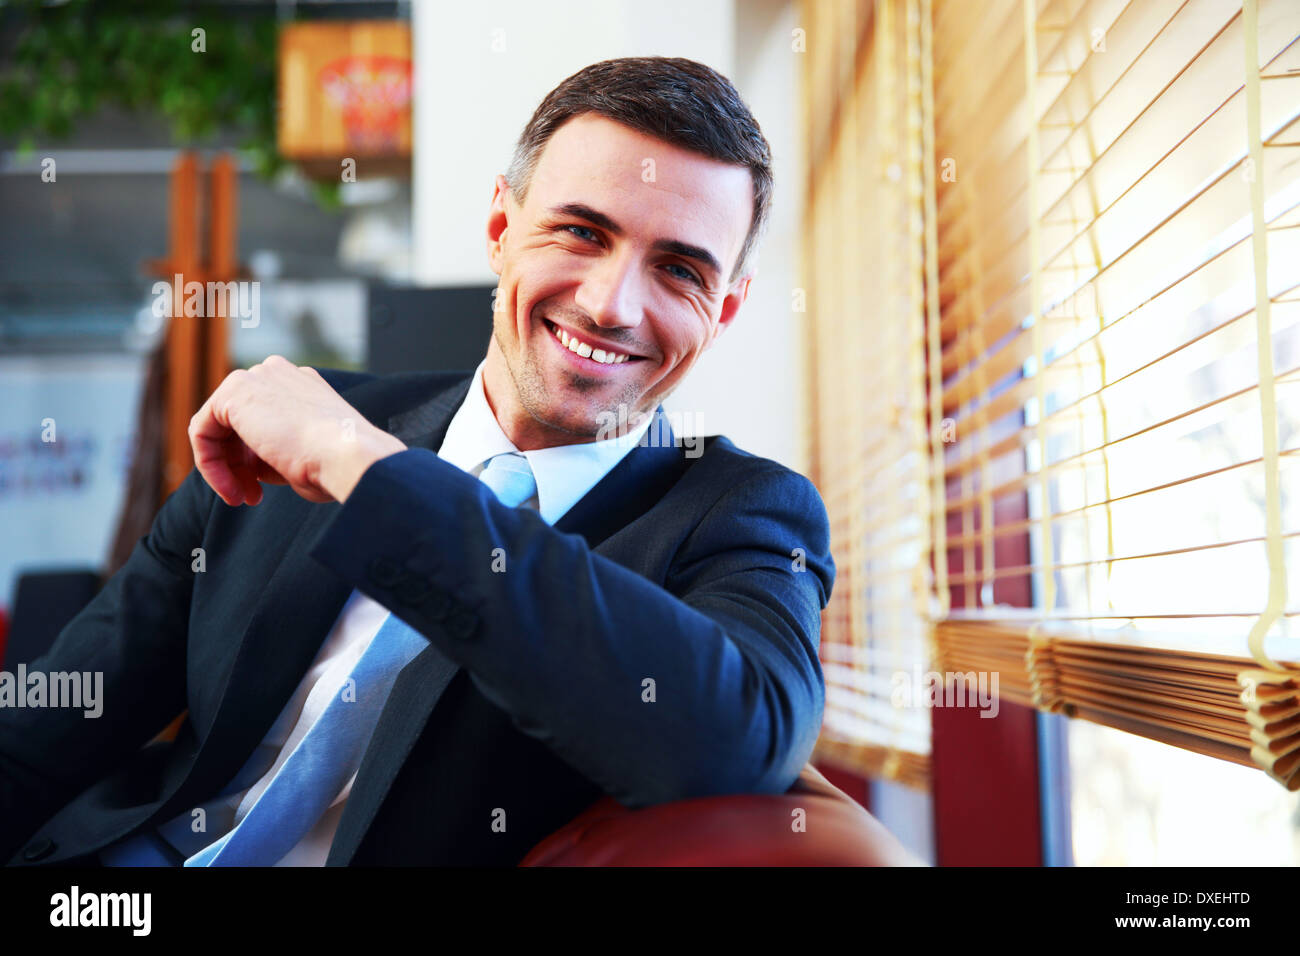 Portrait of a handsome happy businessman in suit Photo Stock